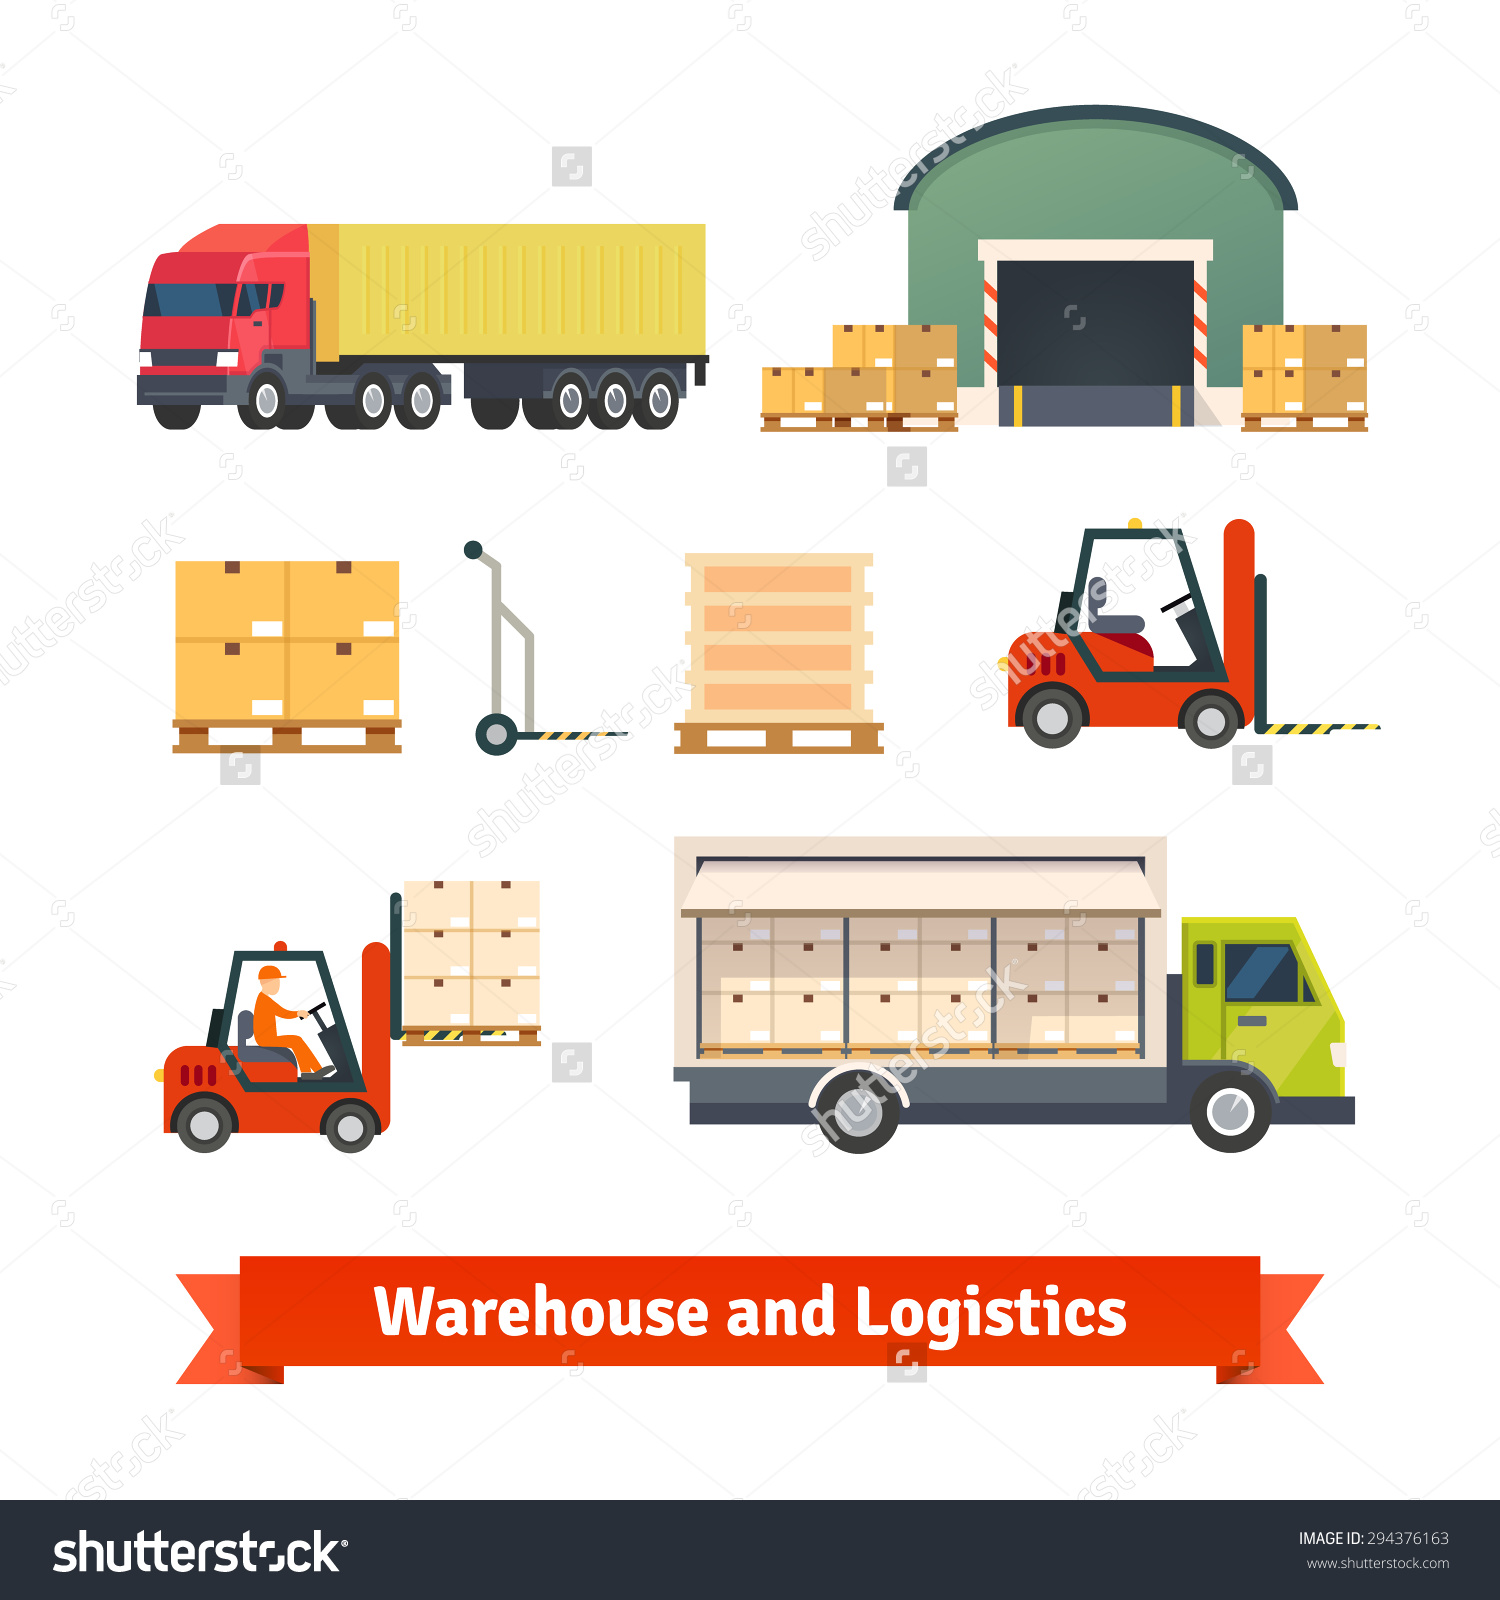 Warehouse Inventory Logistics Truck Loading Goods Stock Vector.